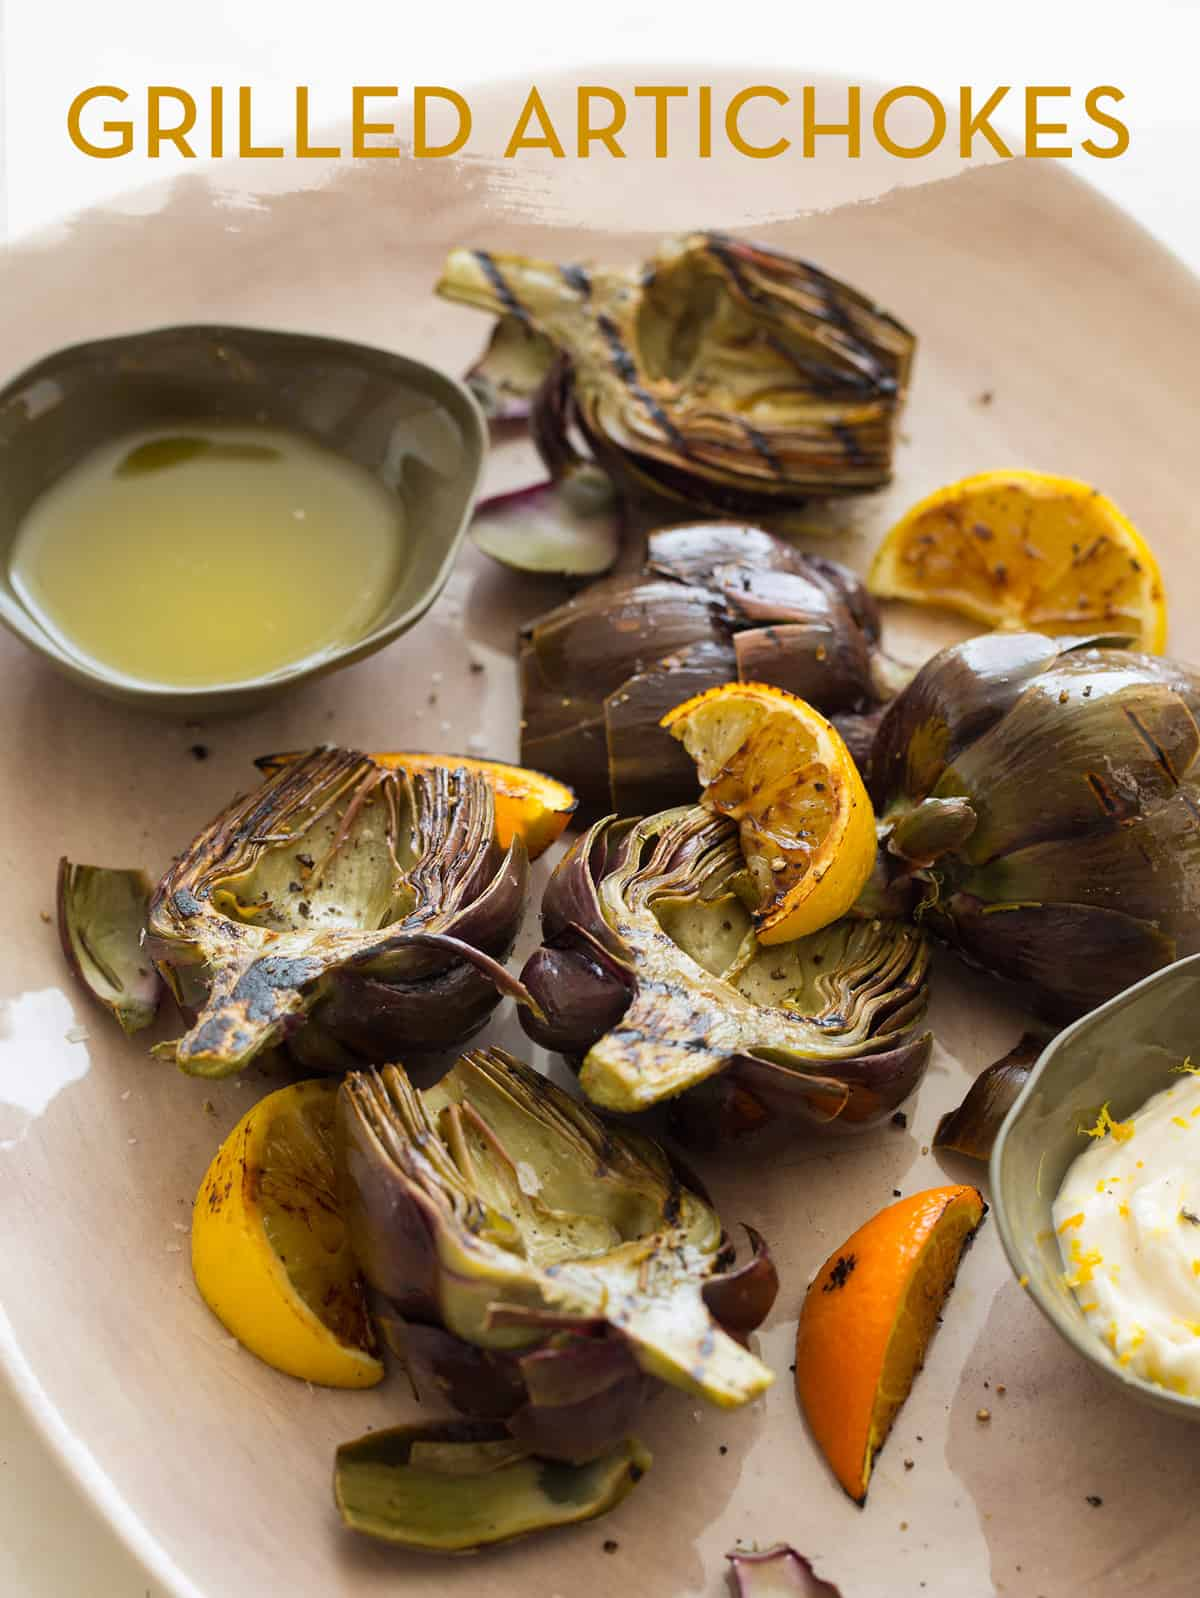 Grilled Artichokes | Appetizer or Side dish recipe | Spoon Fork Bacon